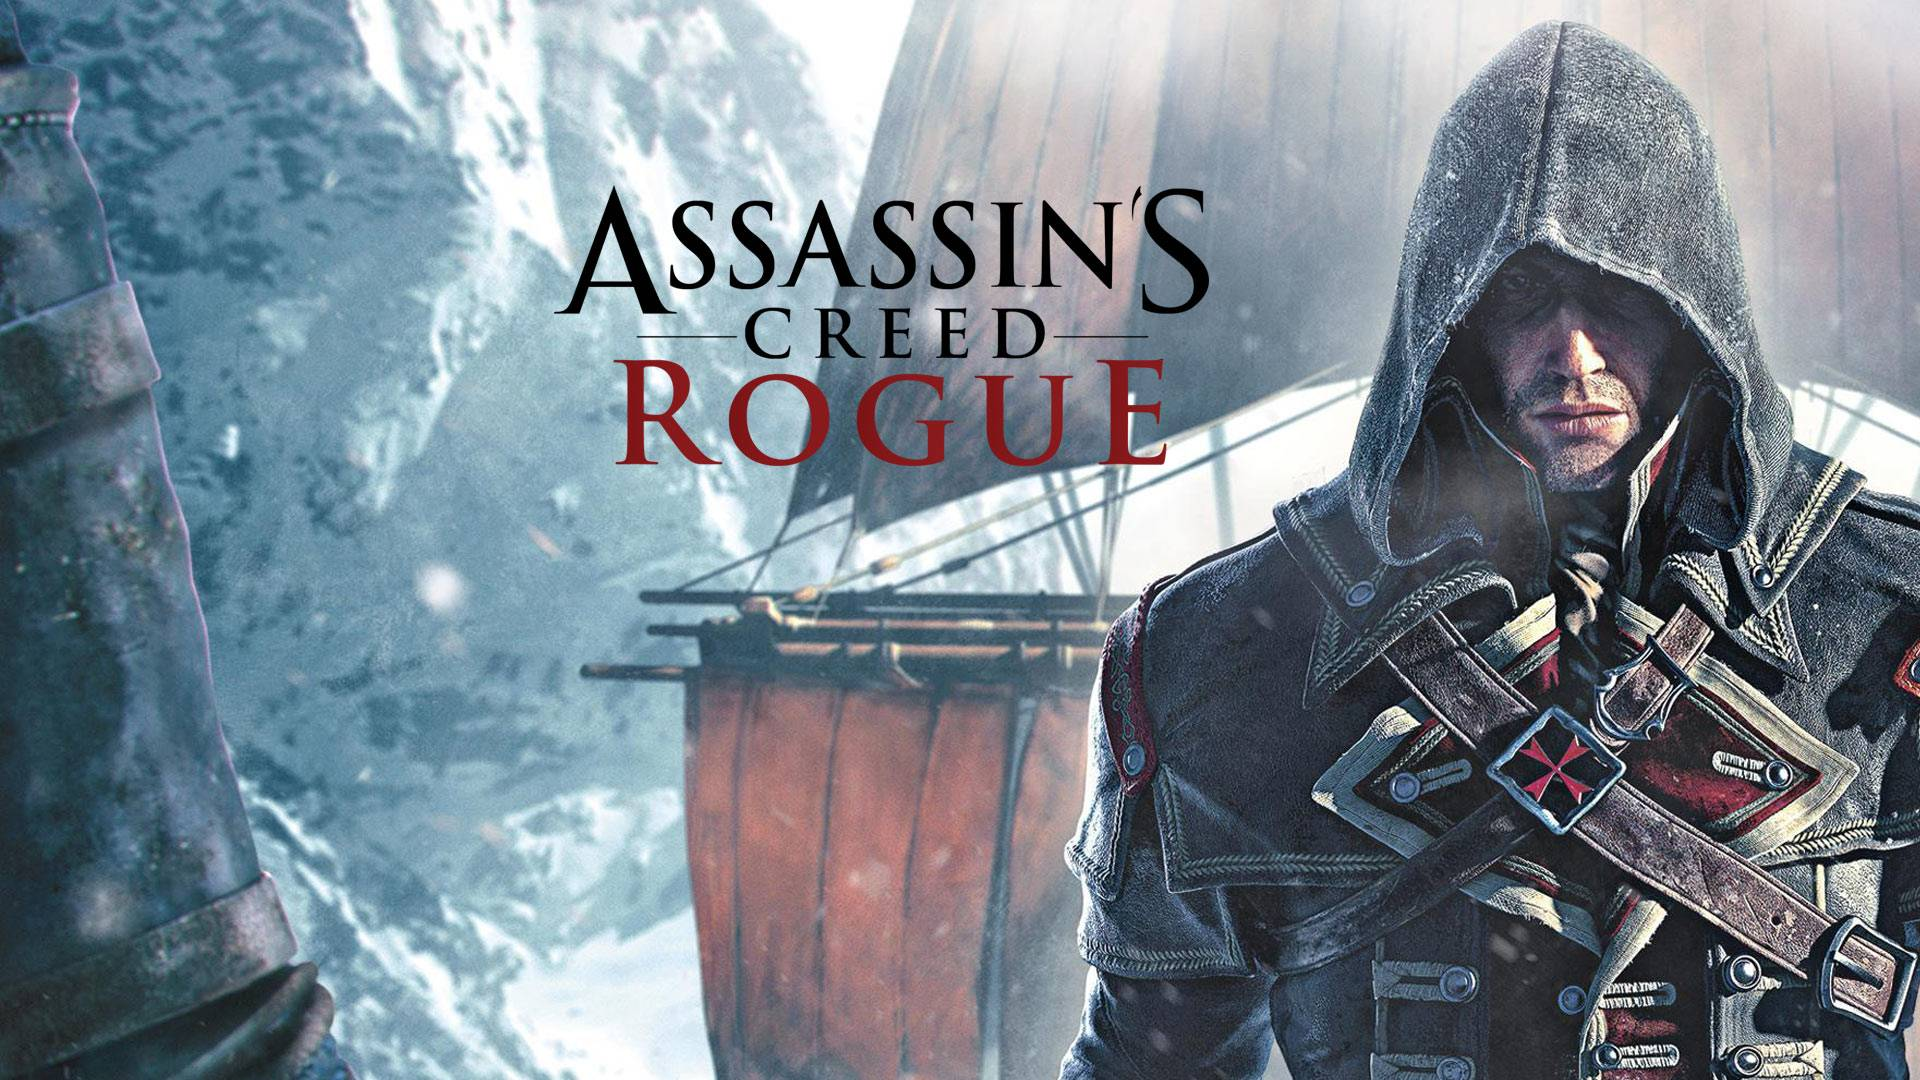 Assassin's Creed Rogue – Comparação gráfica entre as versões de Nintendo Switch, PlayStation 4 e PlayStation 3